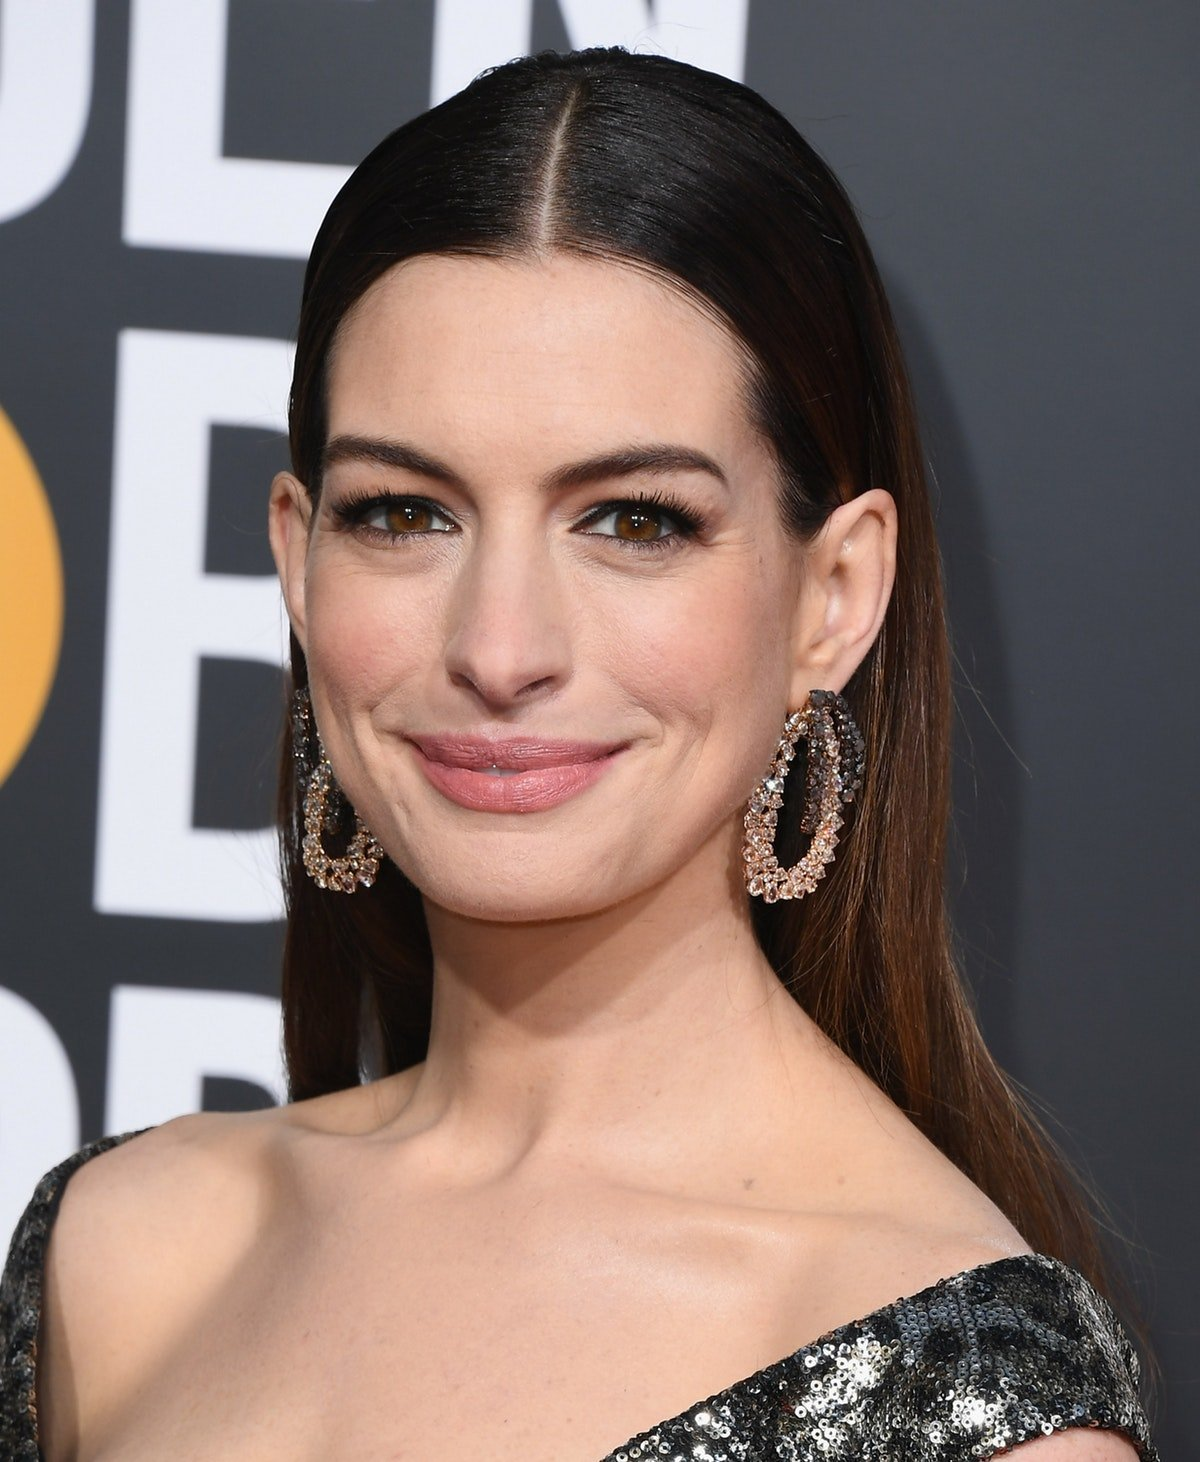 Anne Hathaway Borrowed This Royal Parenting Tip From Prince William & Kate